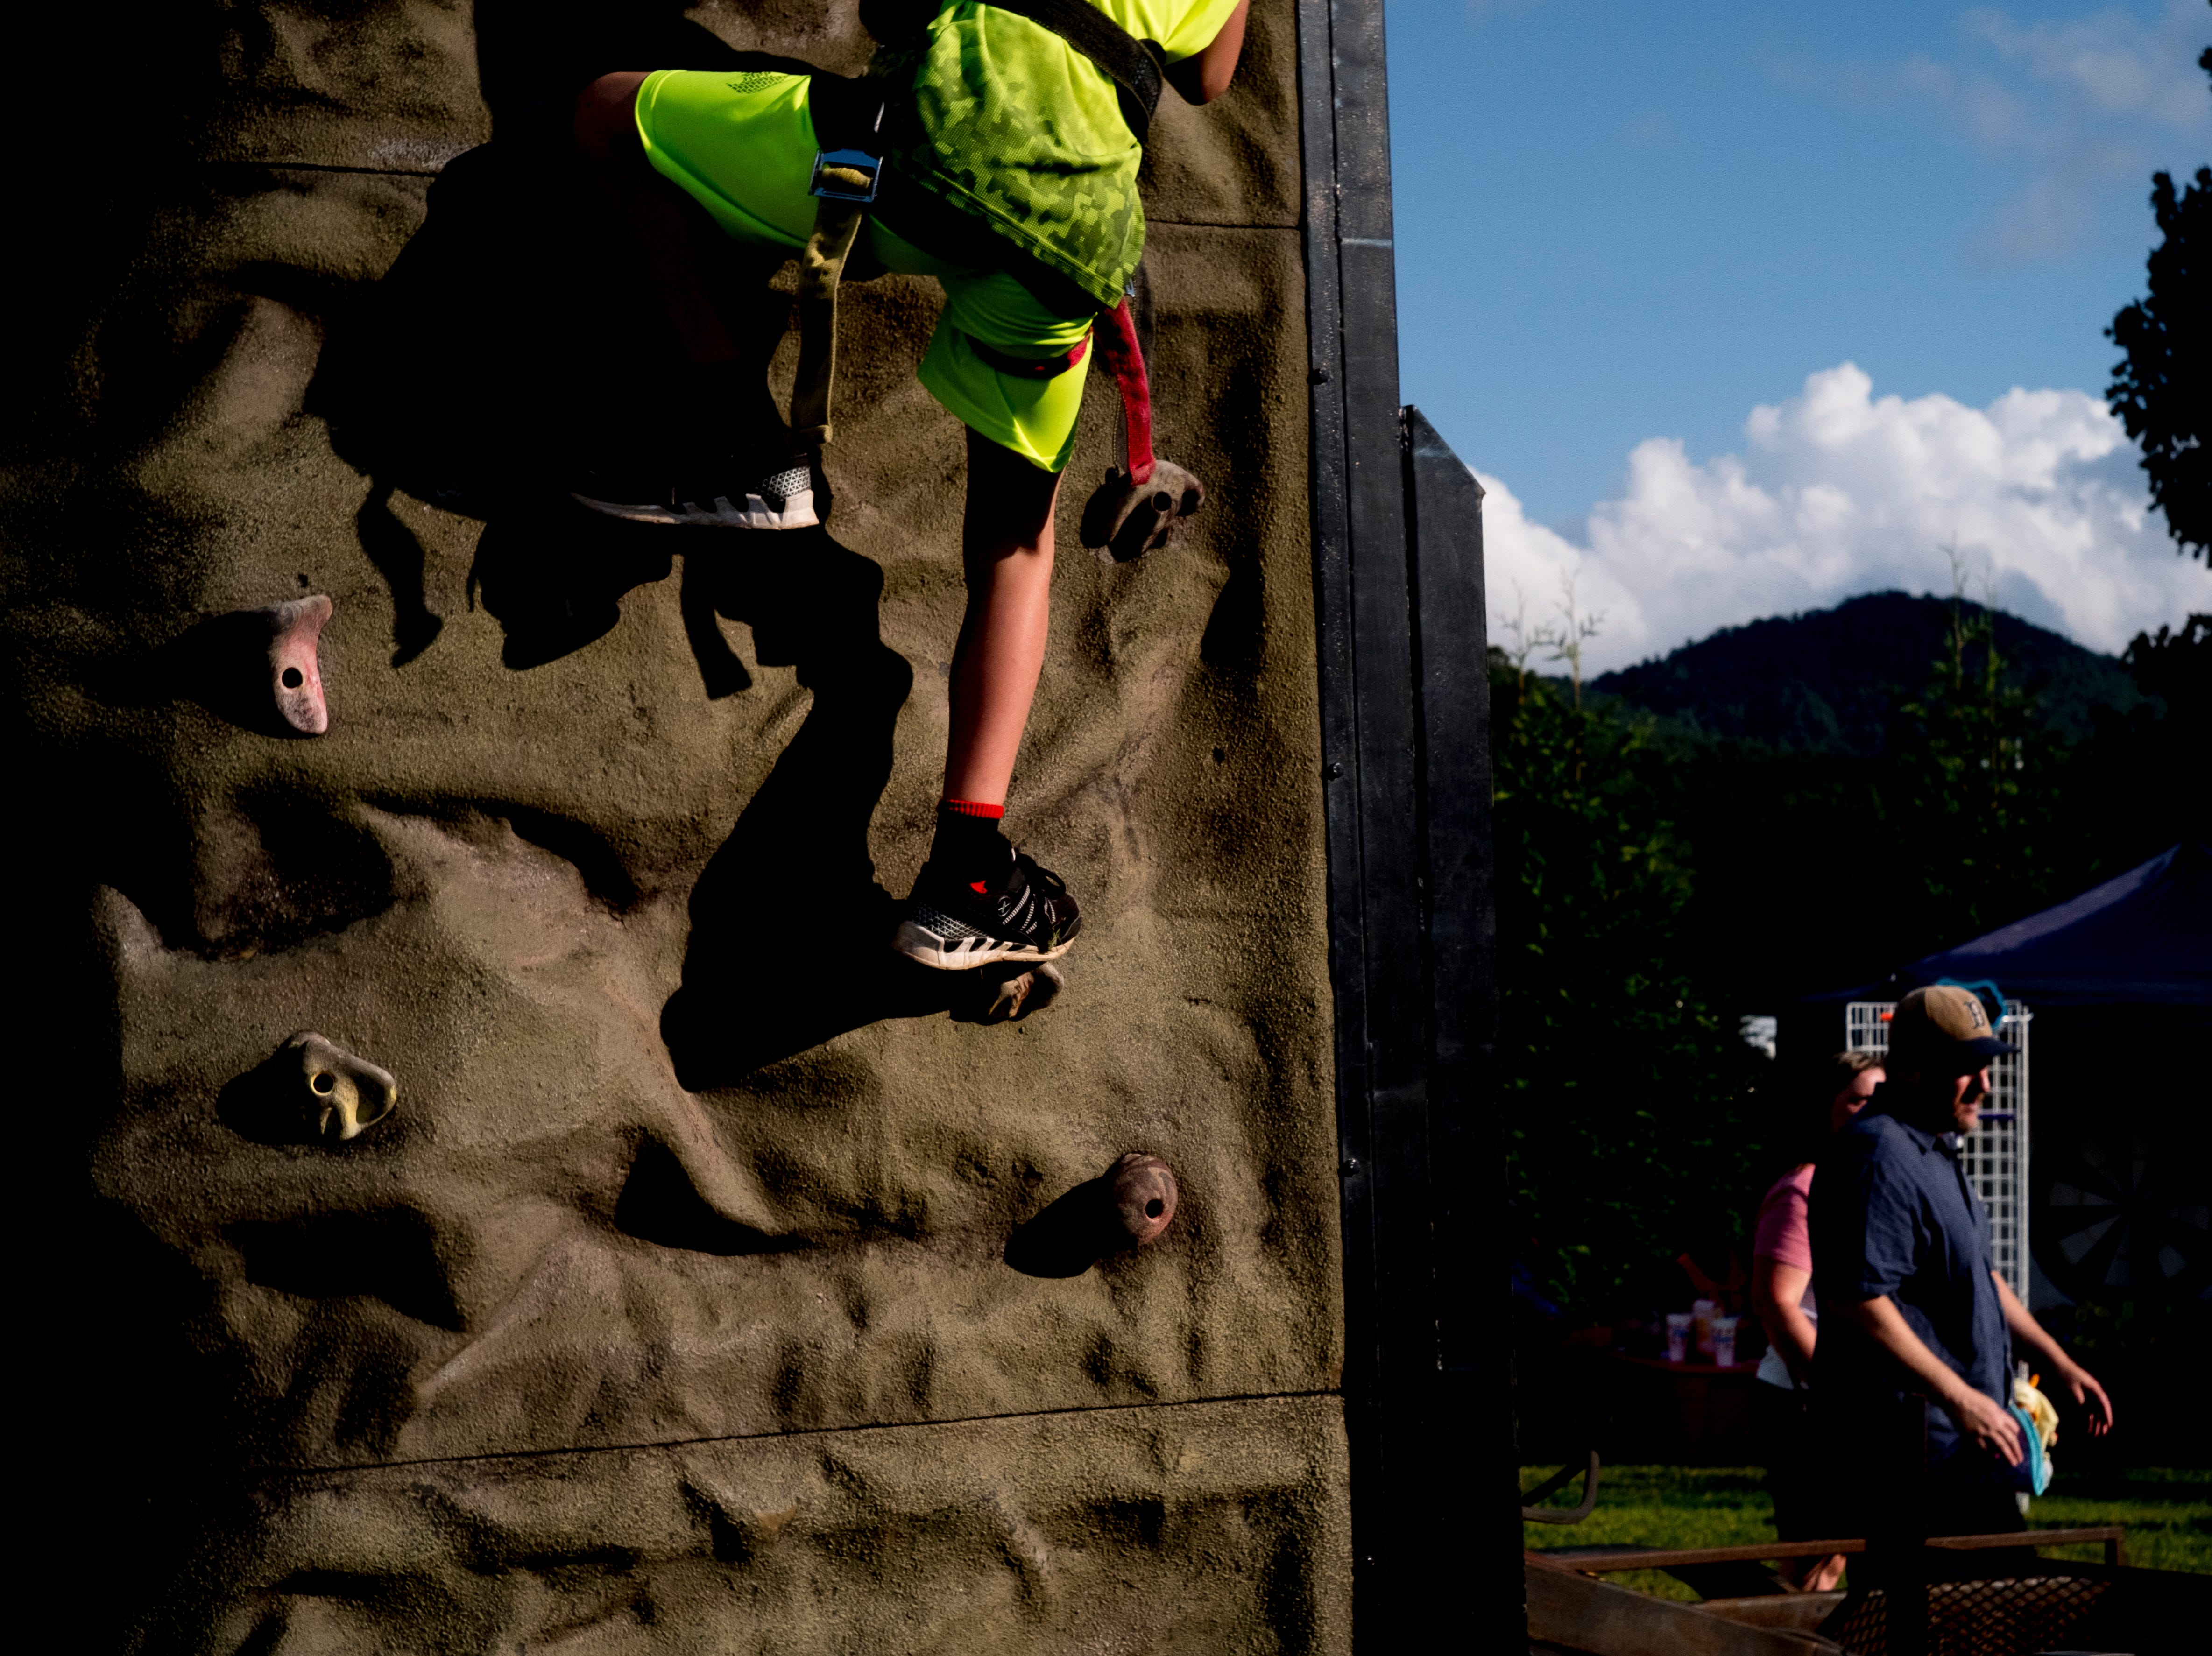 A kid climbs a rock wall at the second annual Smoky Mountain Balloon Festival in Townsend, Tennessee on Saturday, August 18, 2018. The festival featured several hot air balloons, food trucks, wine tasting and live entertainment.